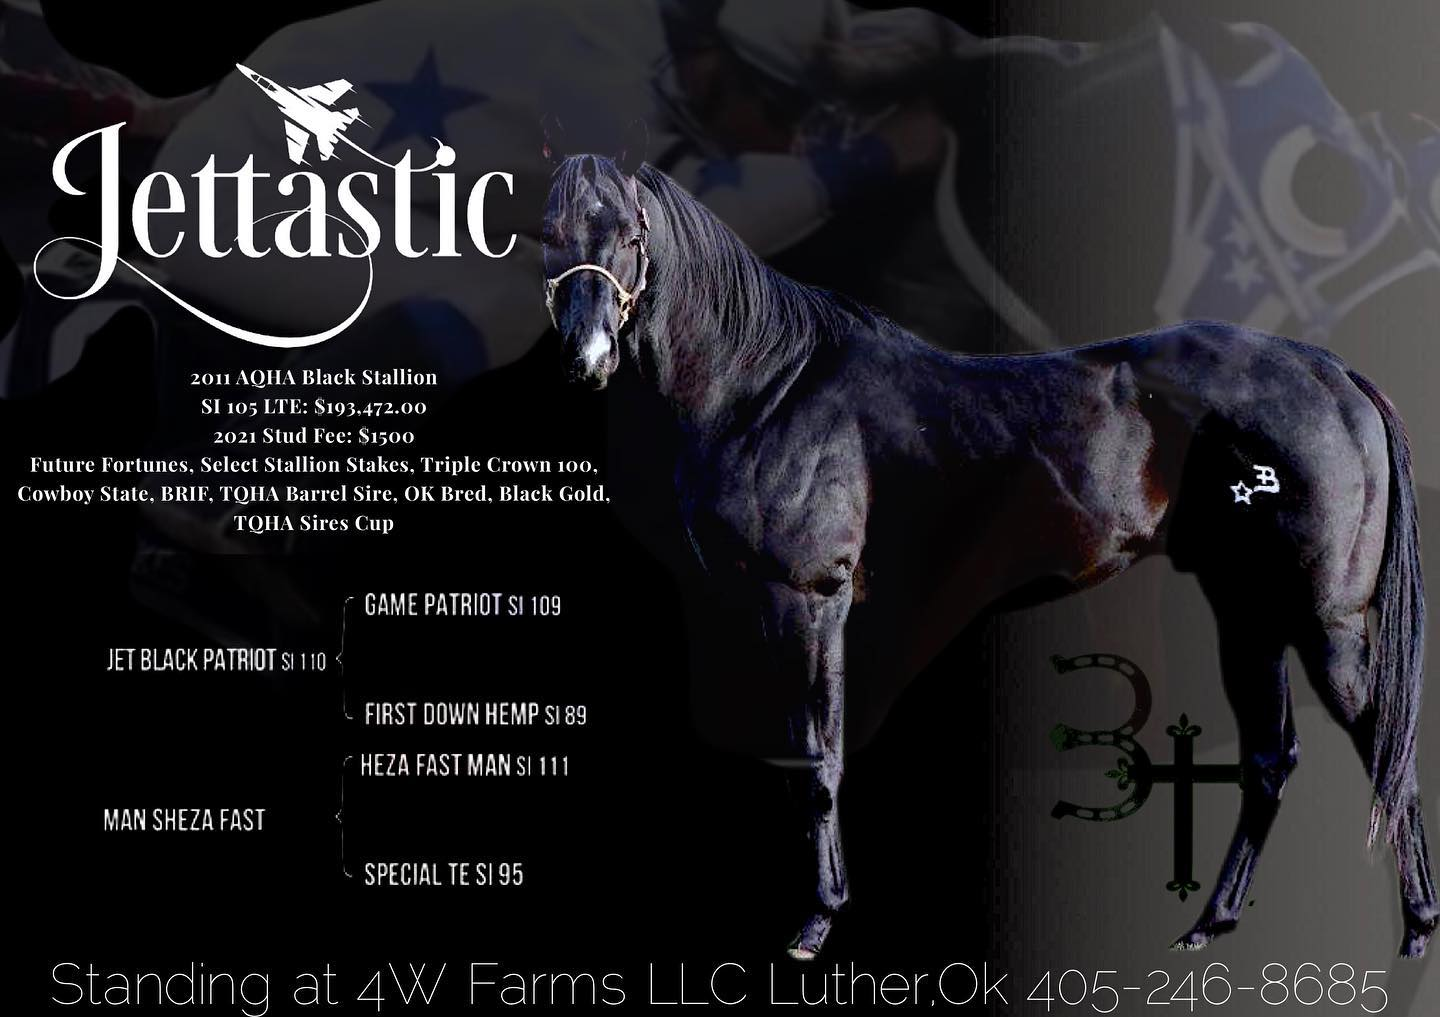 Welcome Jettastic, 2011 Black Stallion with a SI of 105, by Jet Black Patriot out of Man Sheza Fast by Heza Fast Man